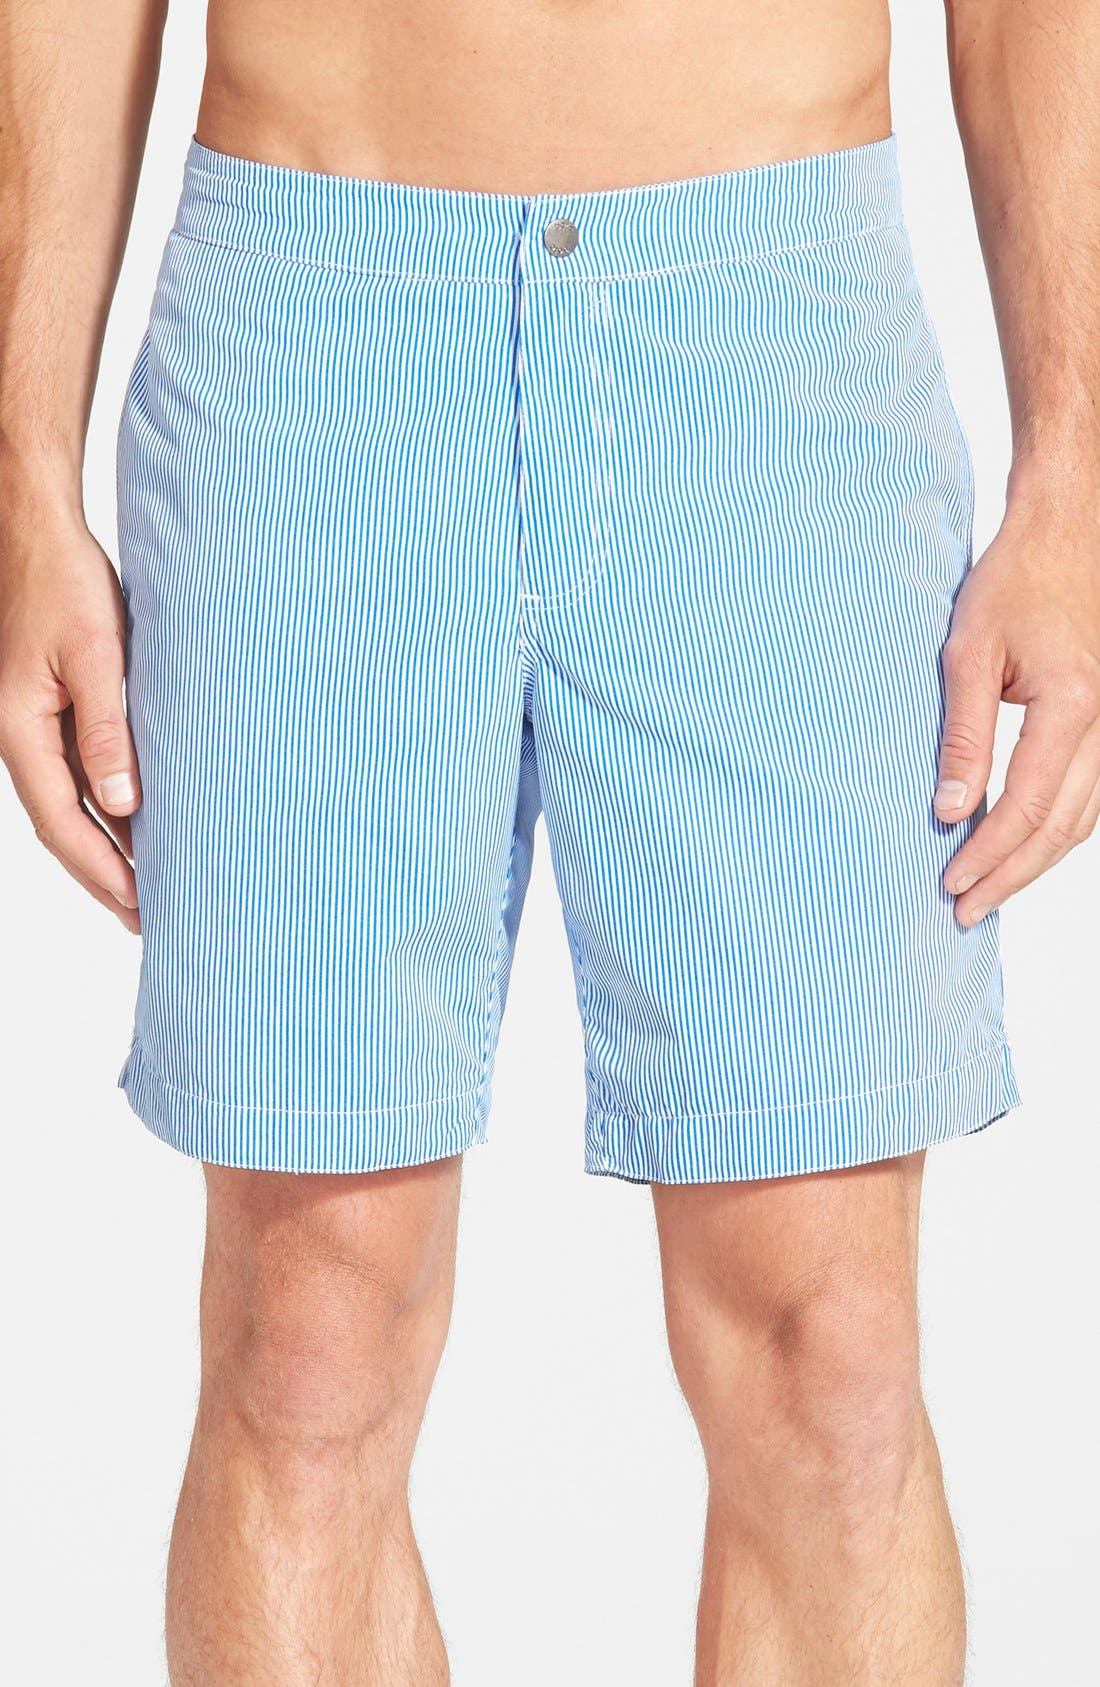 'Aruba - Stripe' Tailored Fit 8.5 Inch Board Shorts,                             Main thumbnail 1, color,                             400